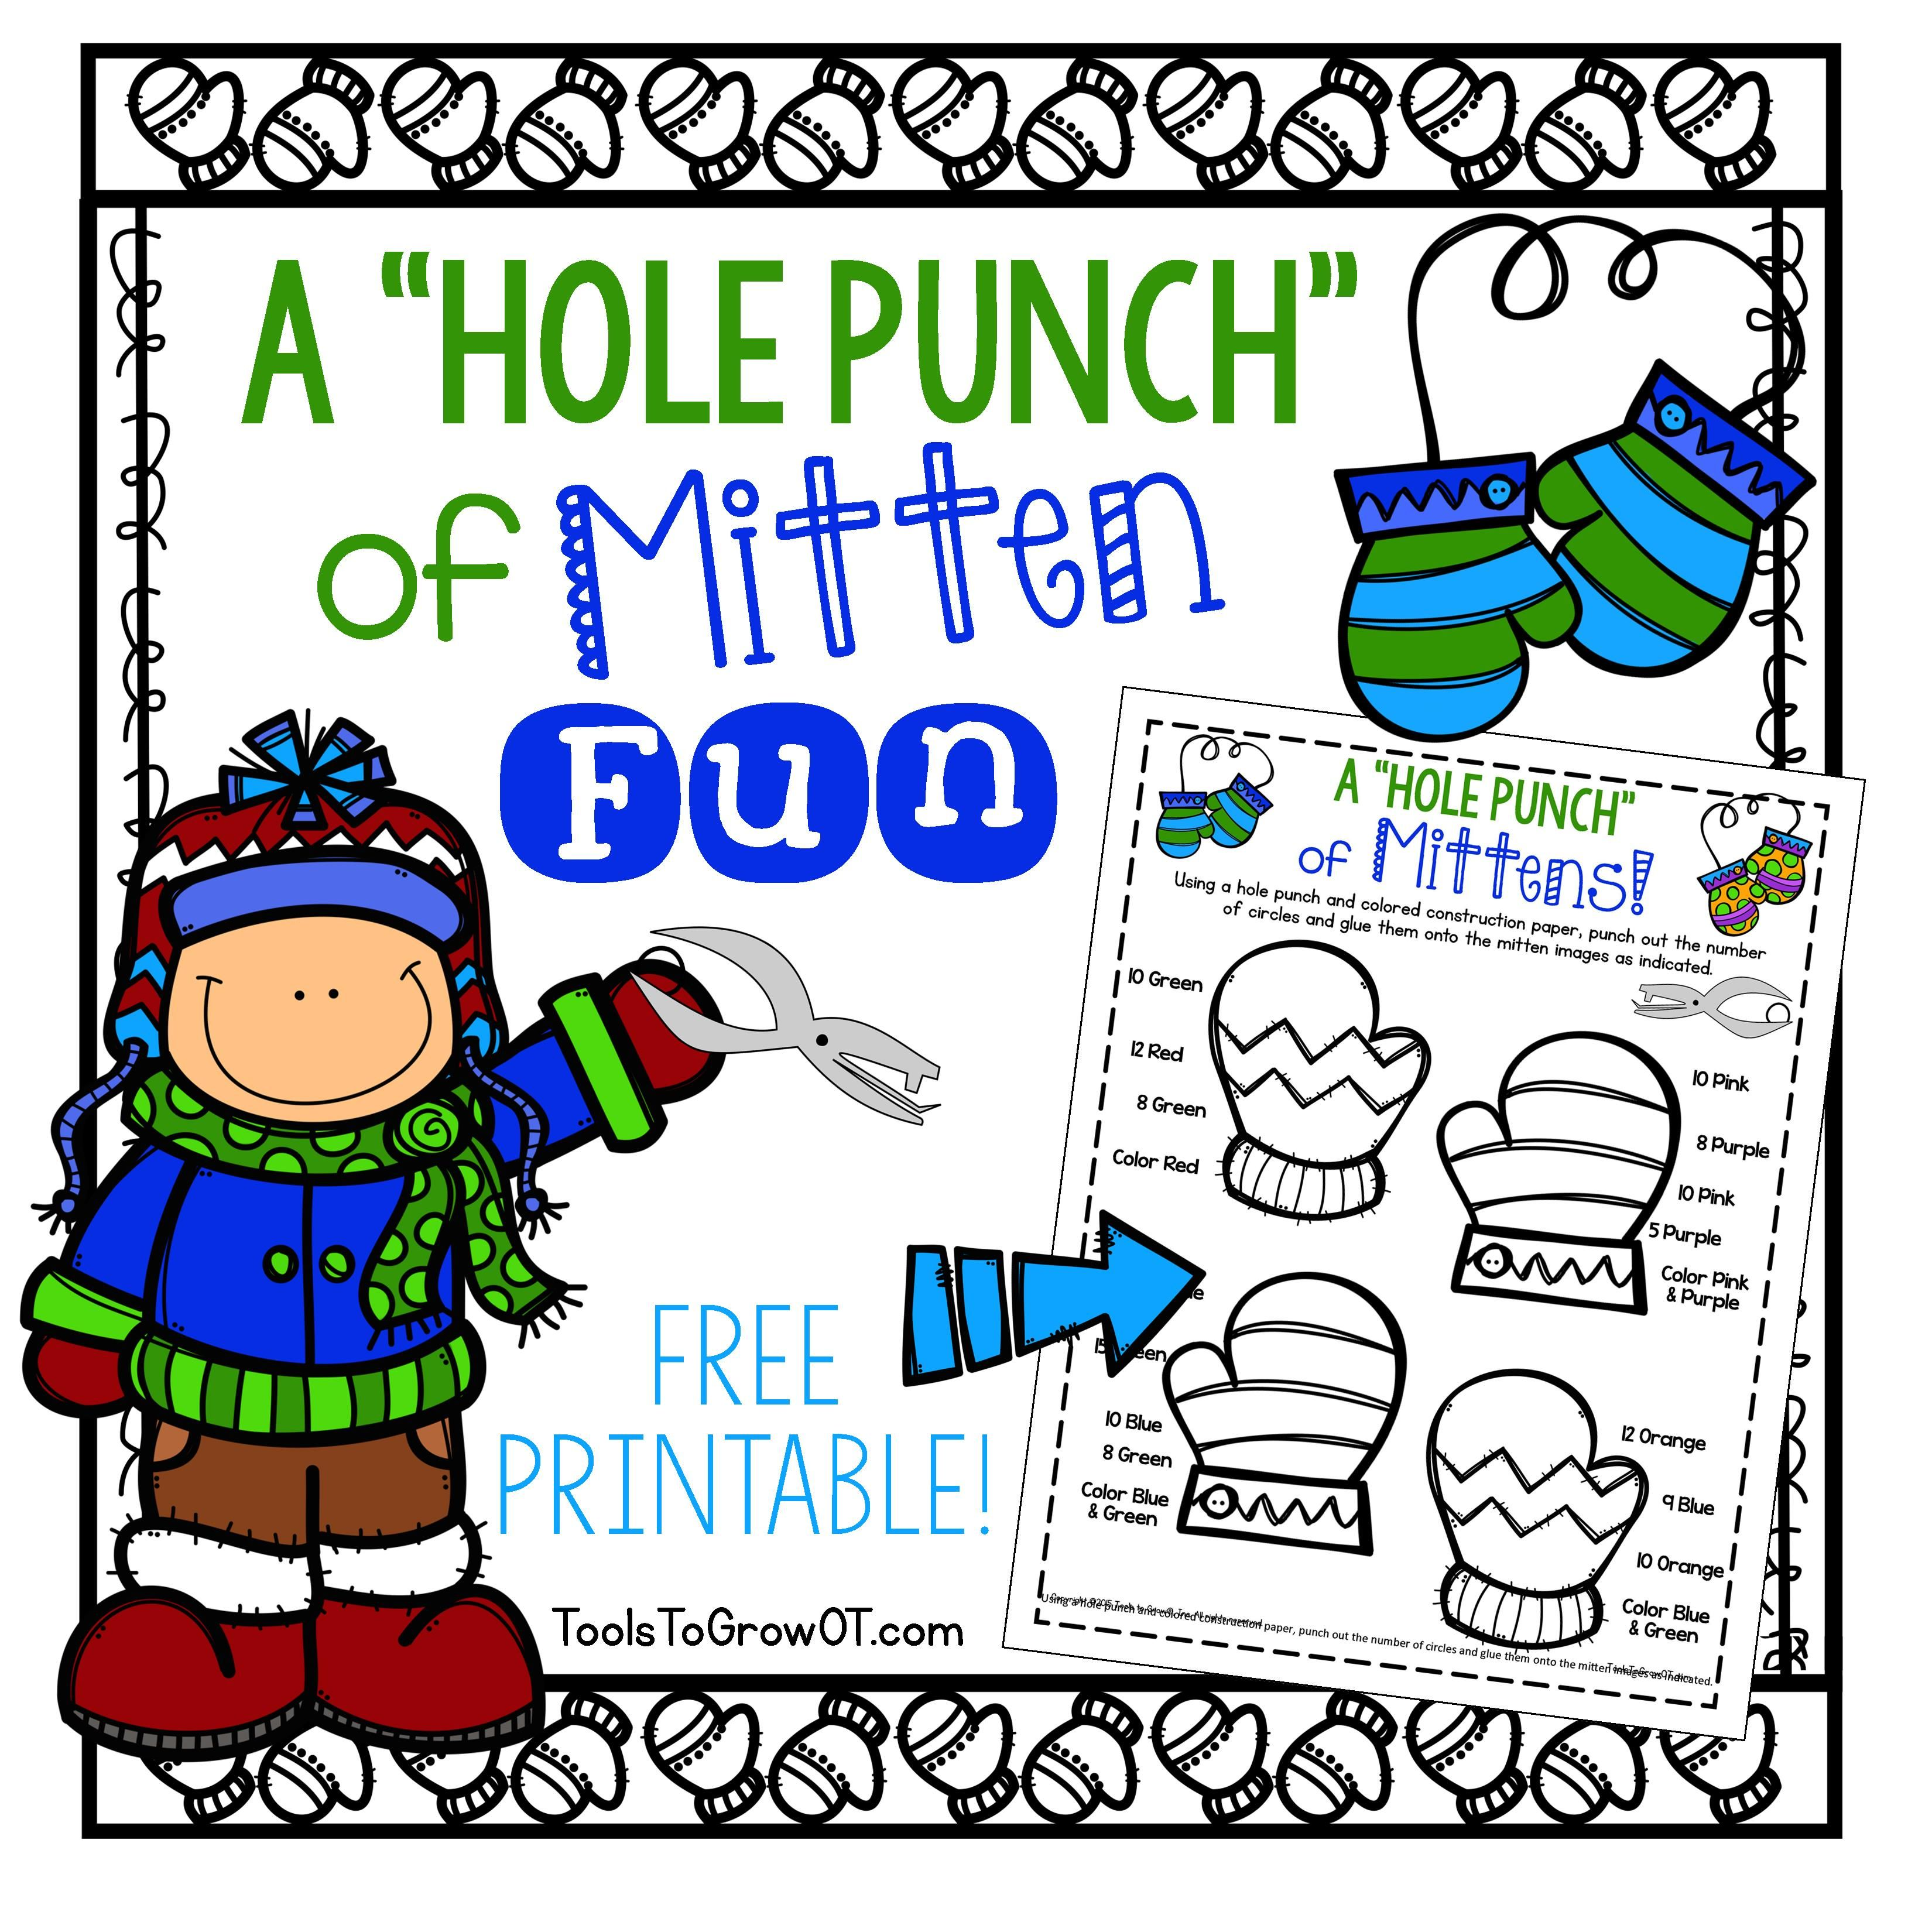 Free Printable A Hole Punch Of Mitten Fun